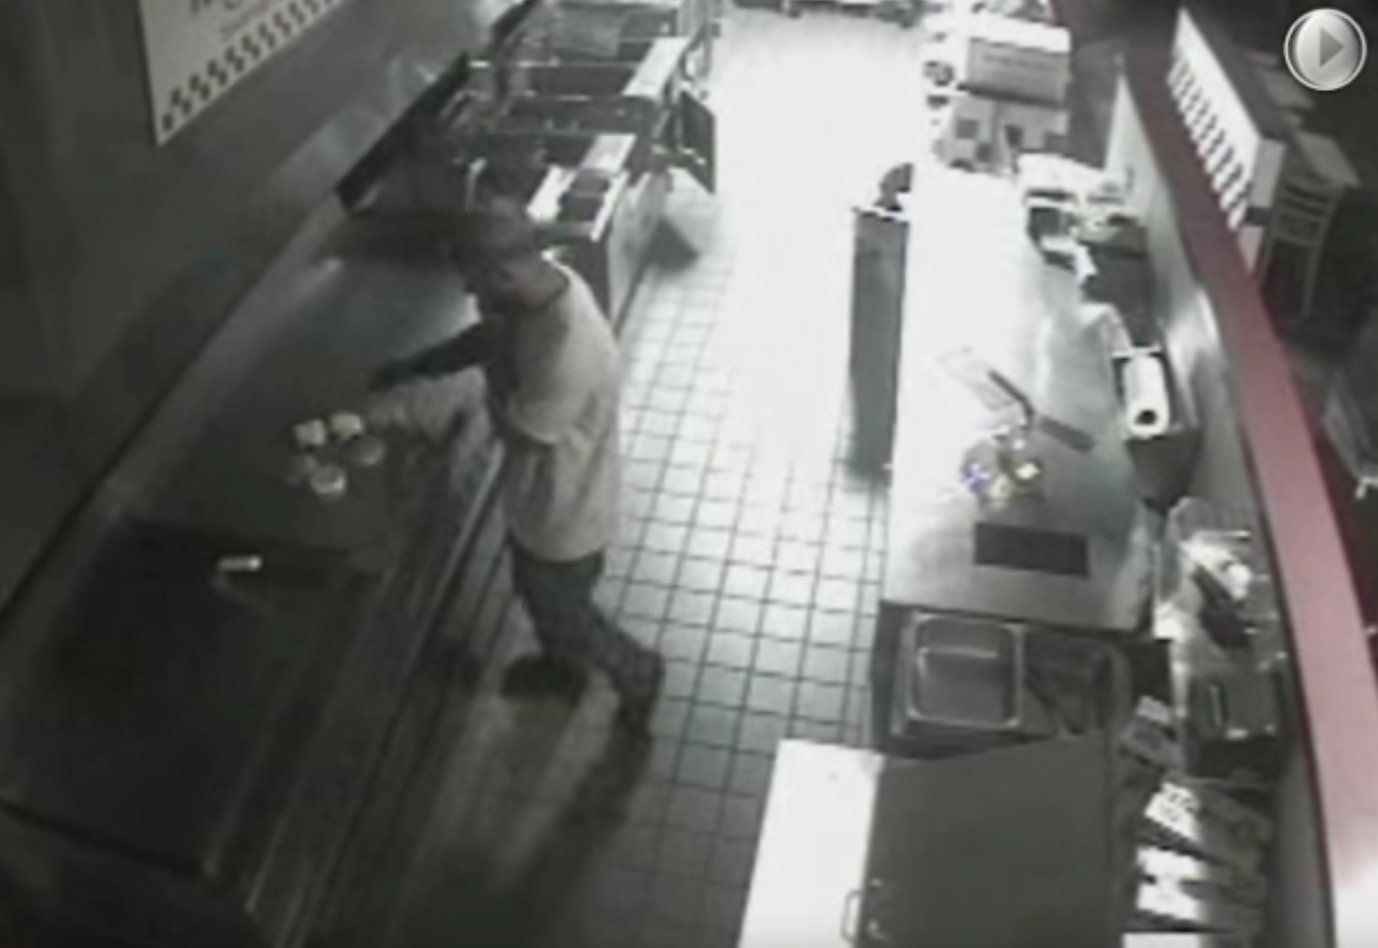 Alleged Hamburglar in Five Guys